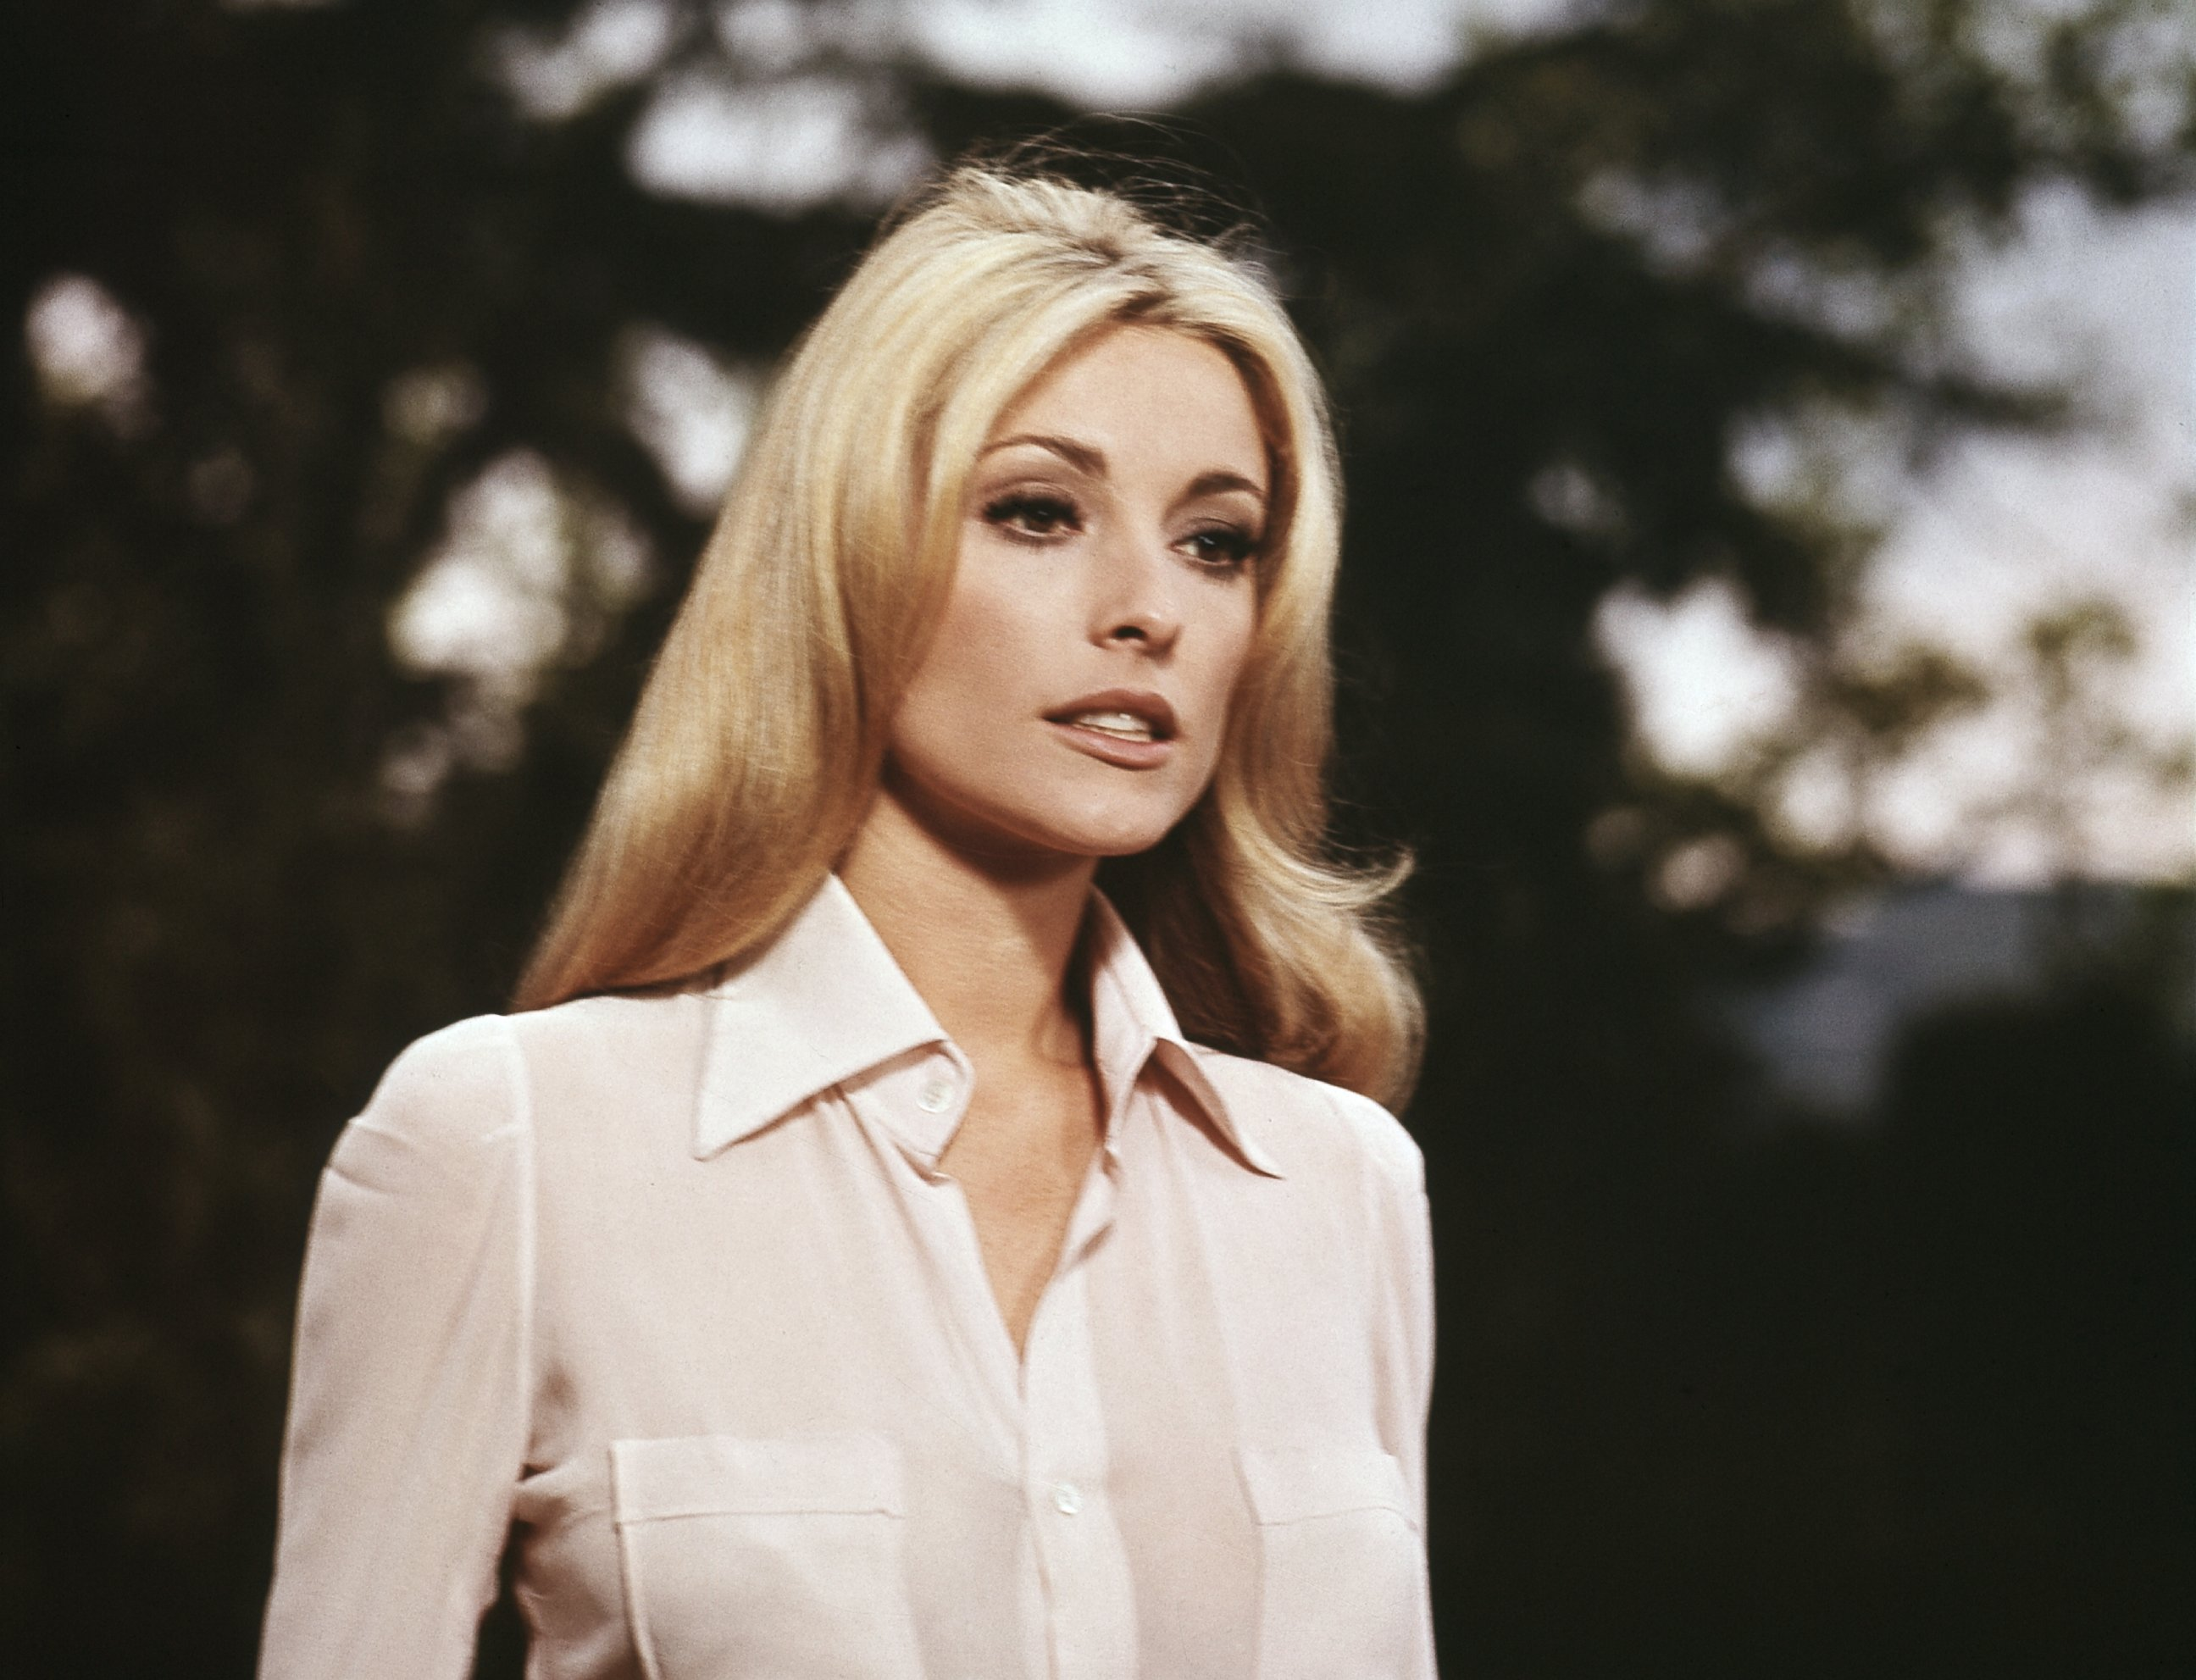 sharon tate videos at abc news video archive at abcnews